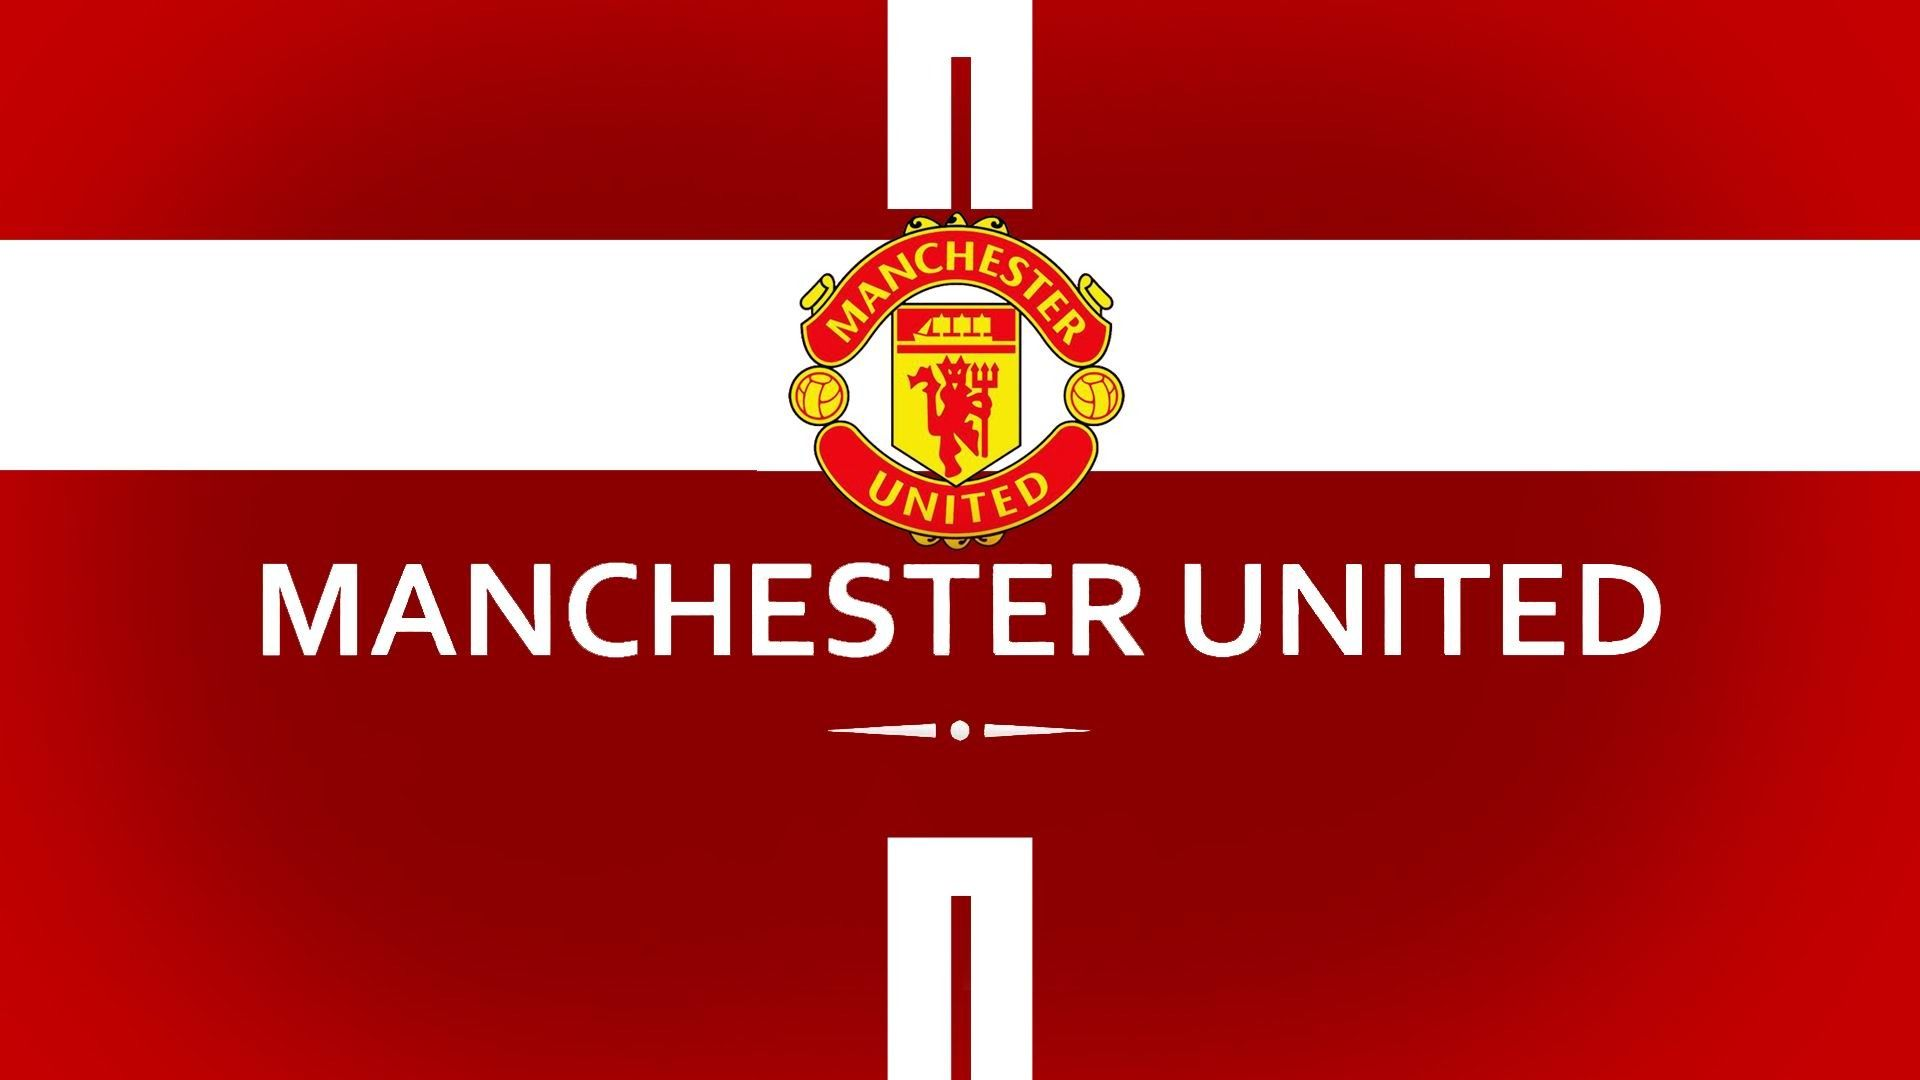 friday 18th december 2015 12pm - 1920x1080px manchester united